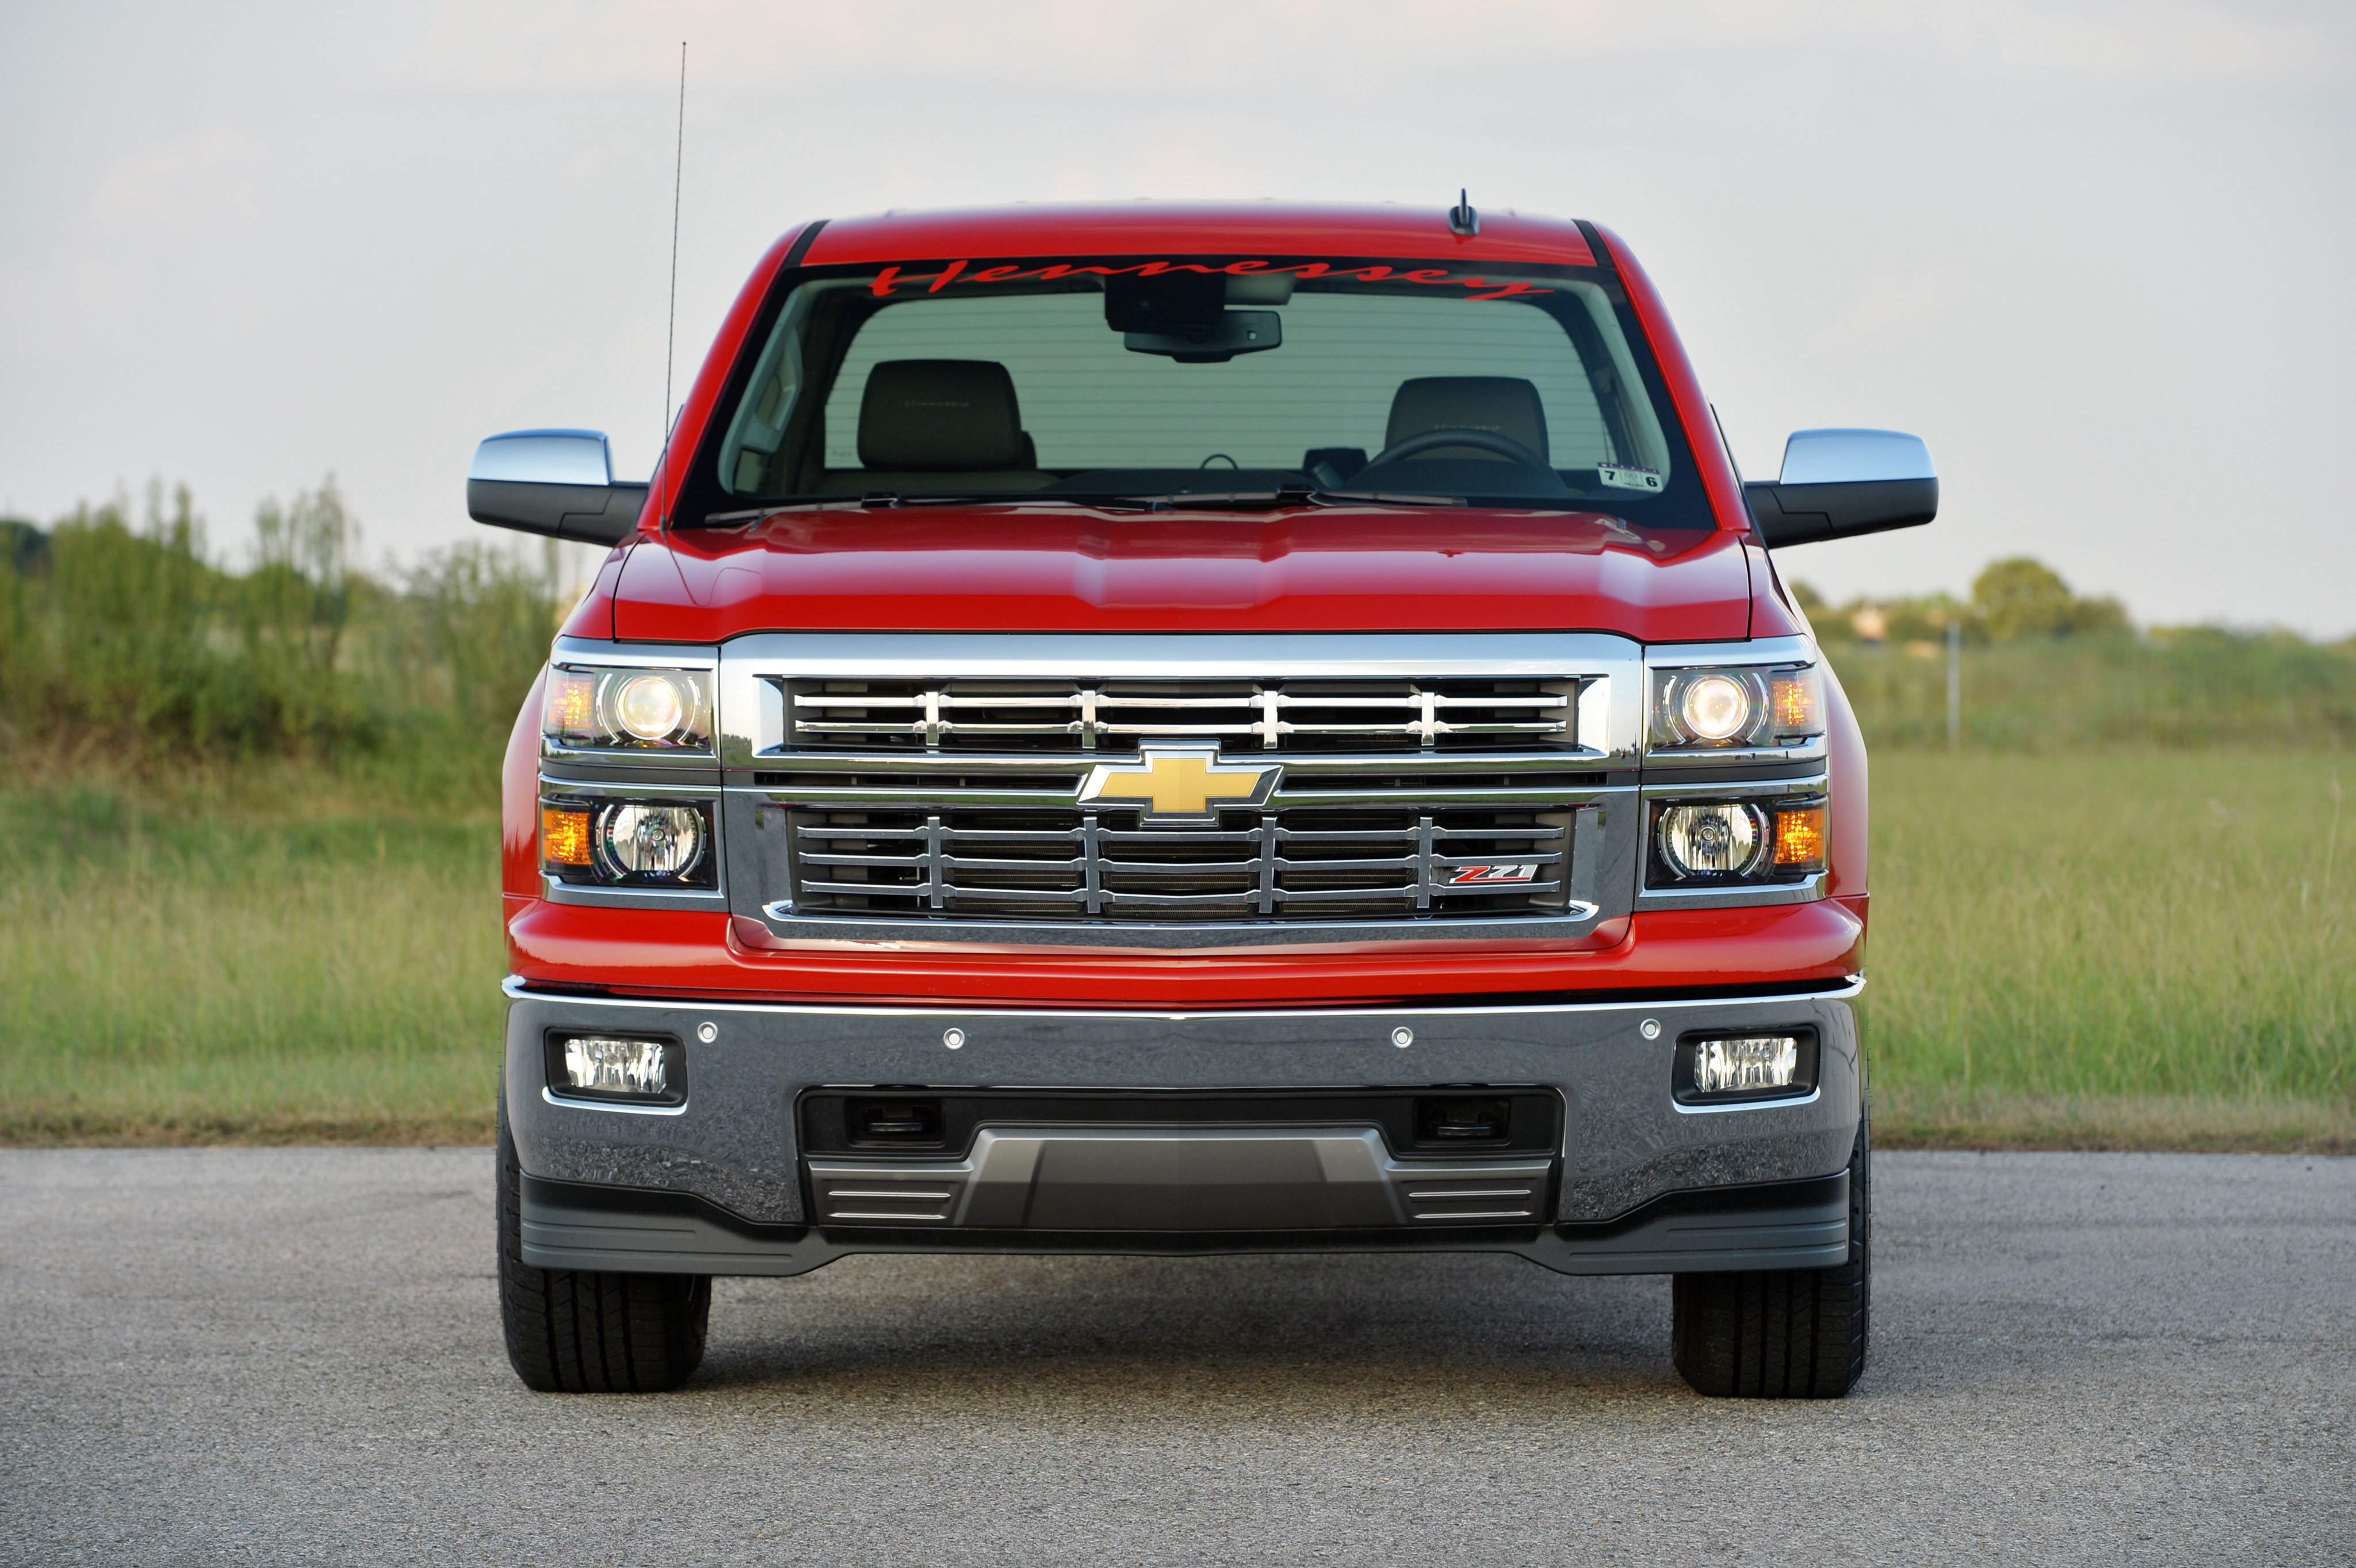 2015 hennessey chevrolet silverado z71 hpe550 pickup muscle tuning wallpaper 4096x2726 461863 wallpaperup